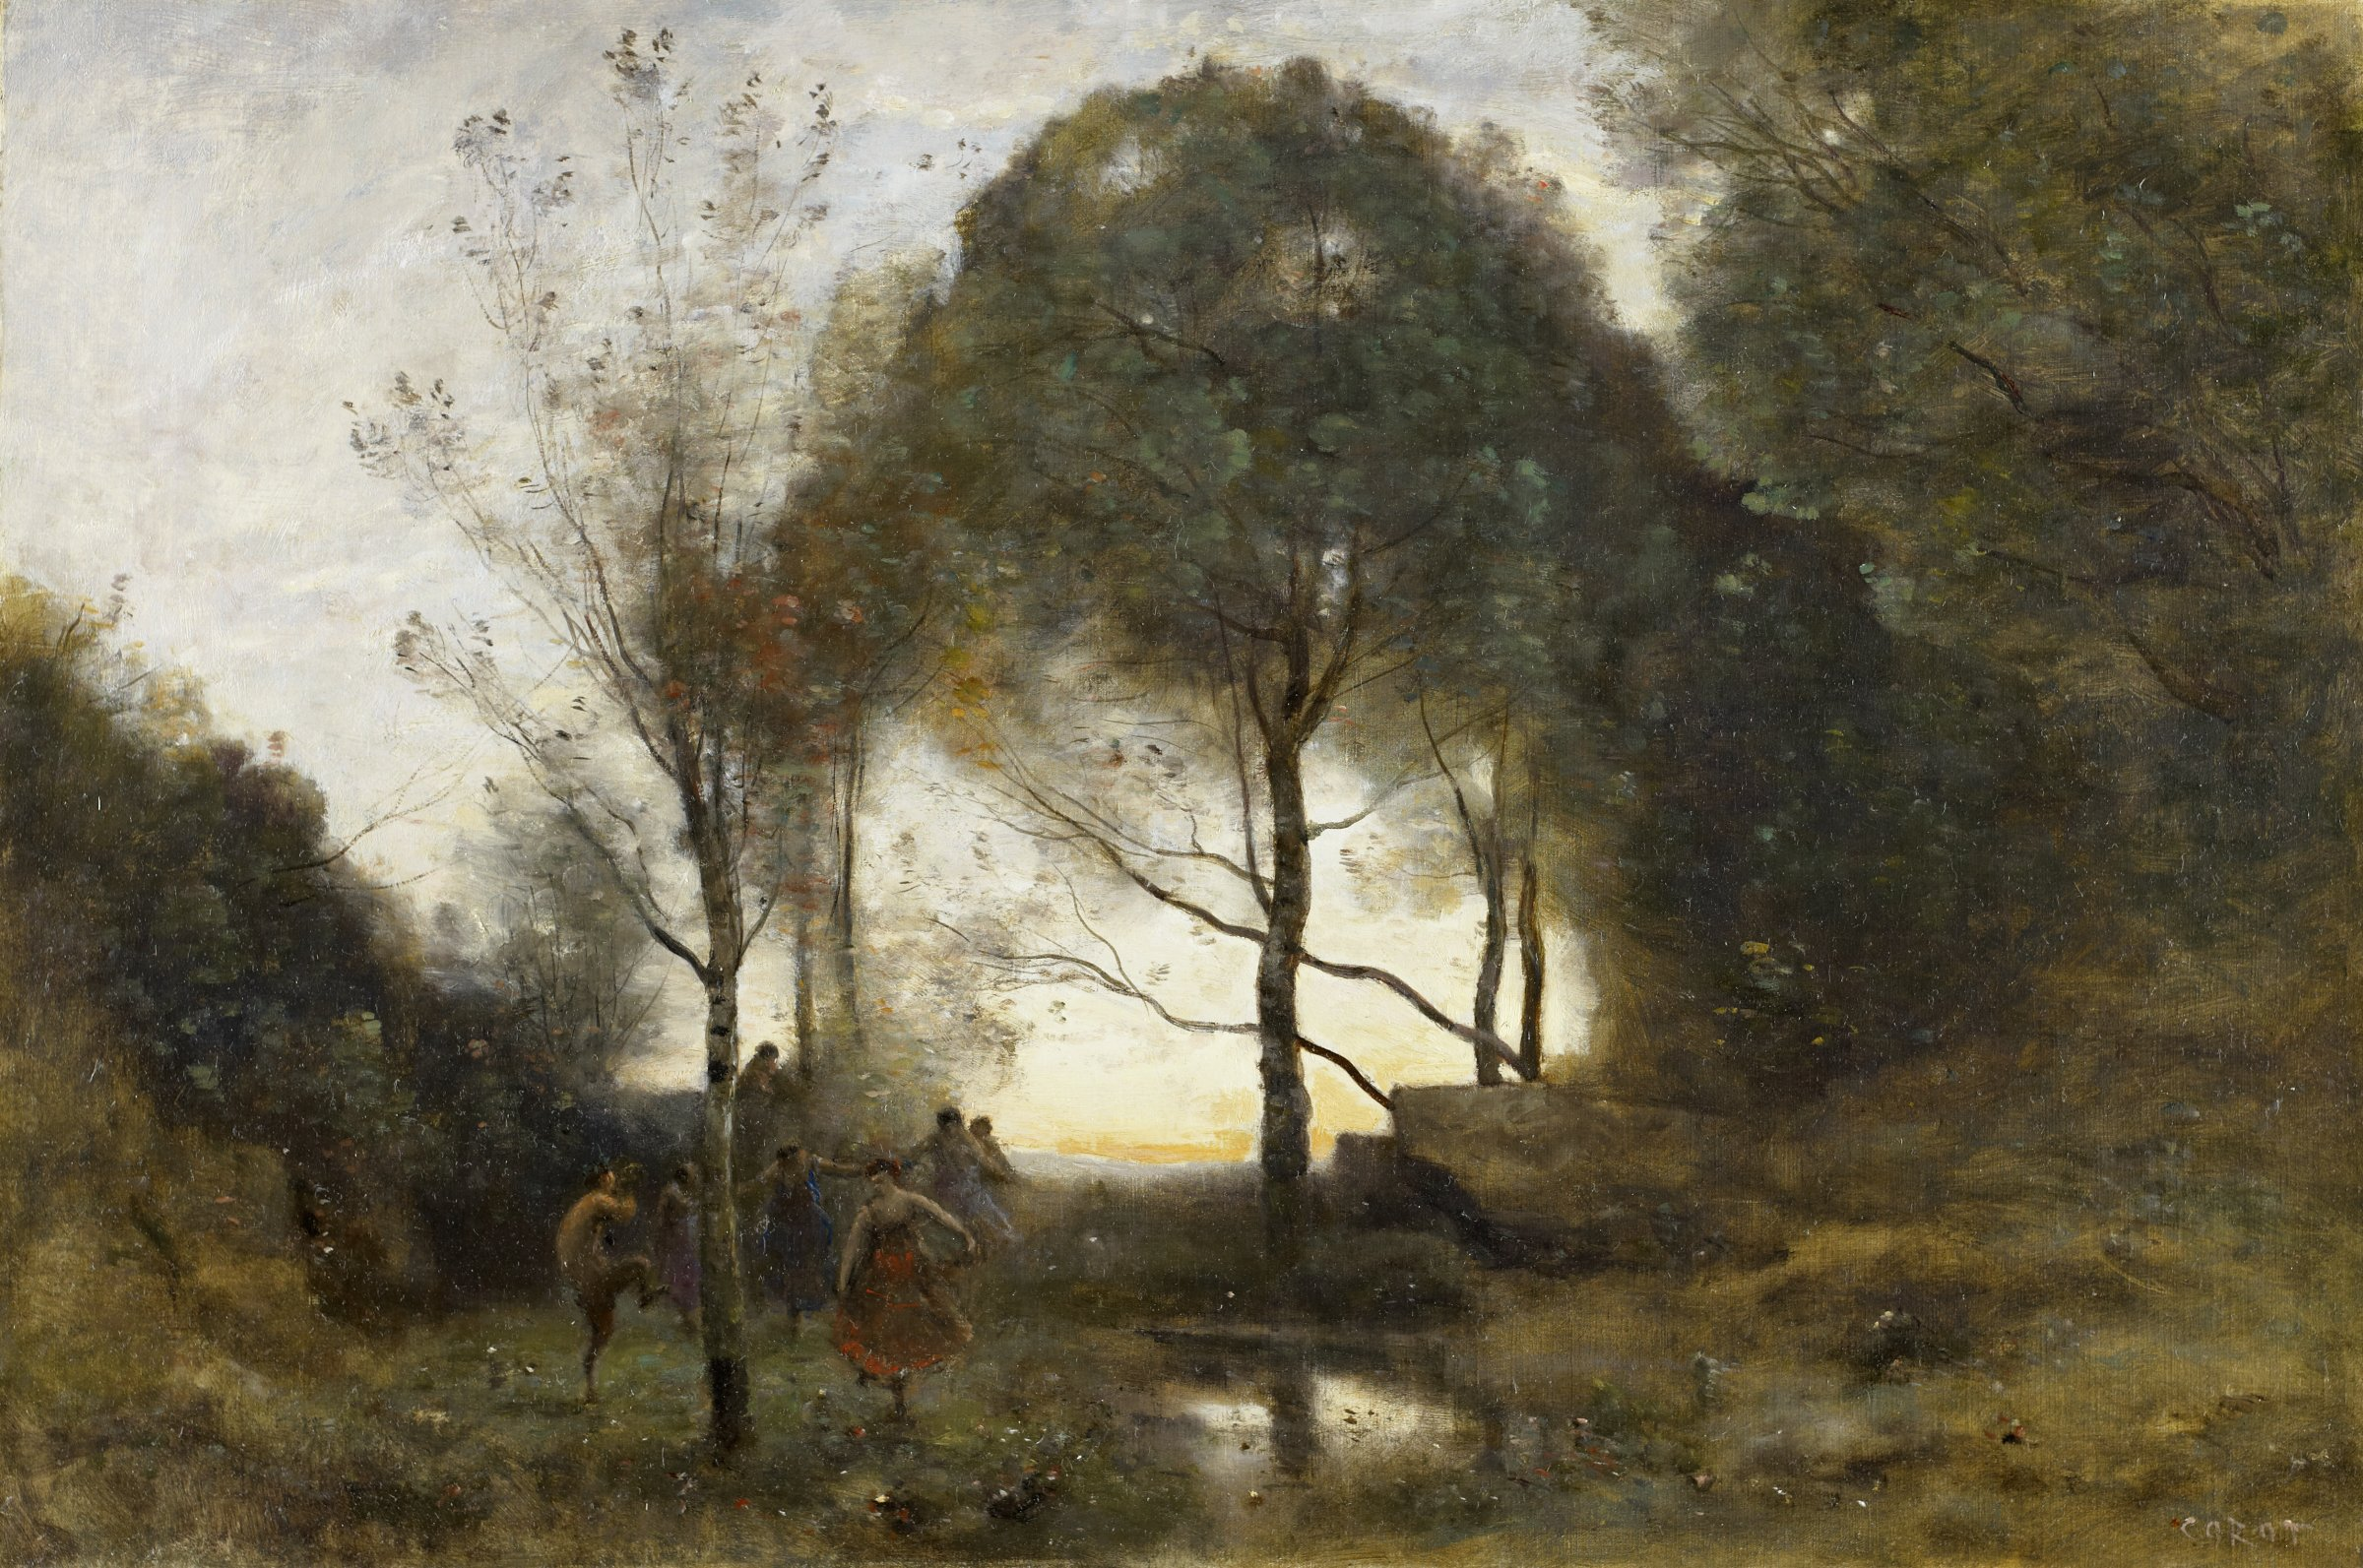 Nymphes et Faunes (Nymphs and Fauns), Jean-Baptiste-Camille Corot, oil on canvas